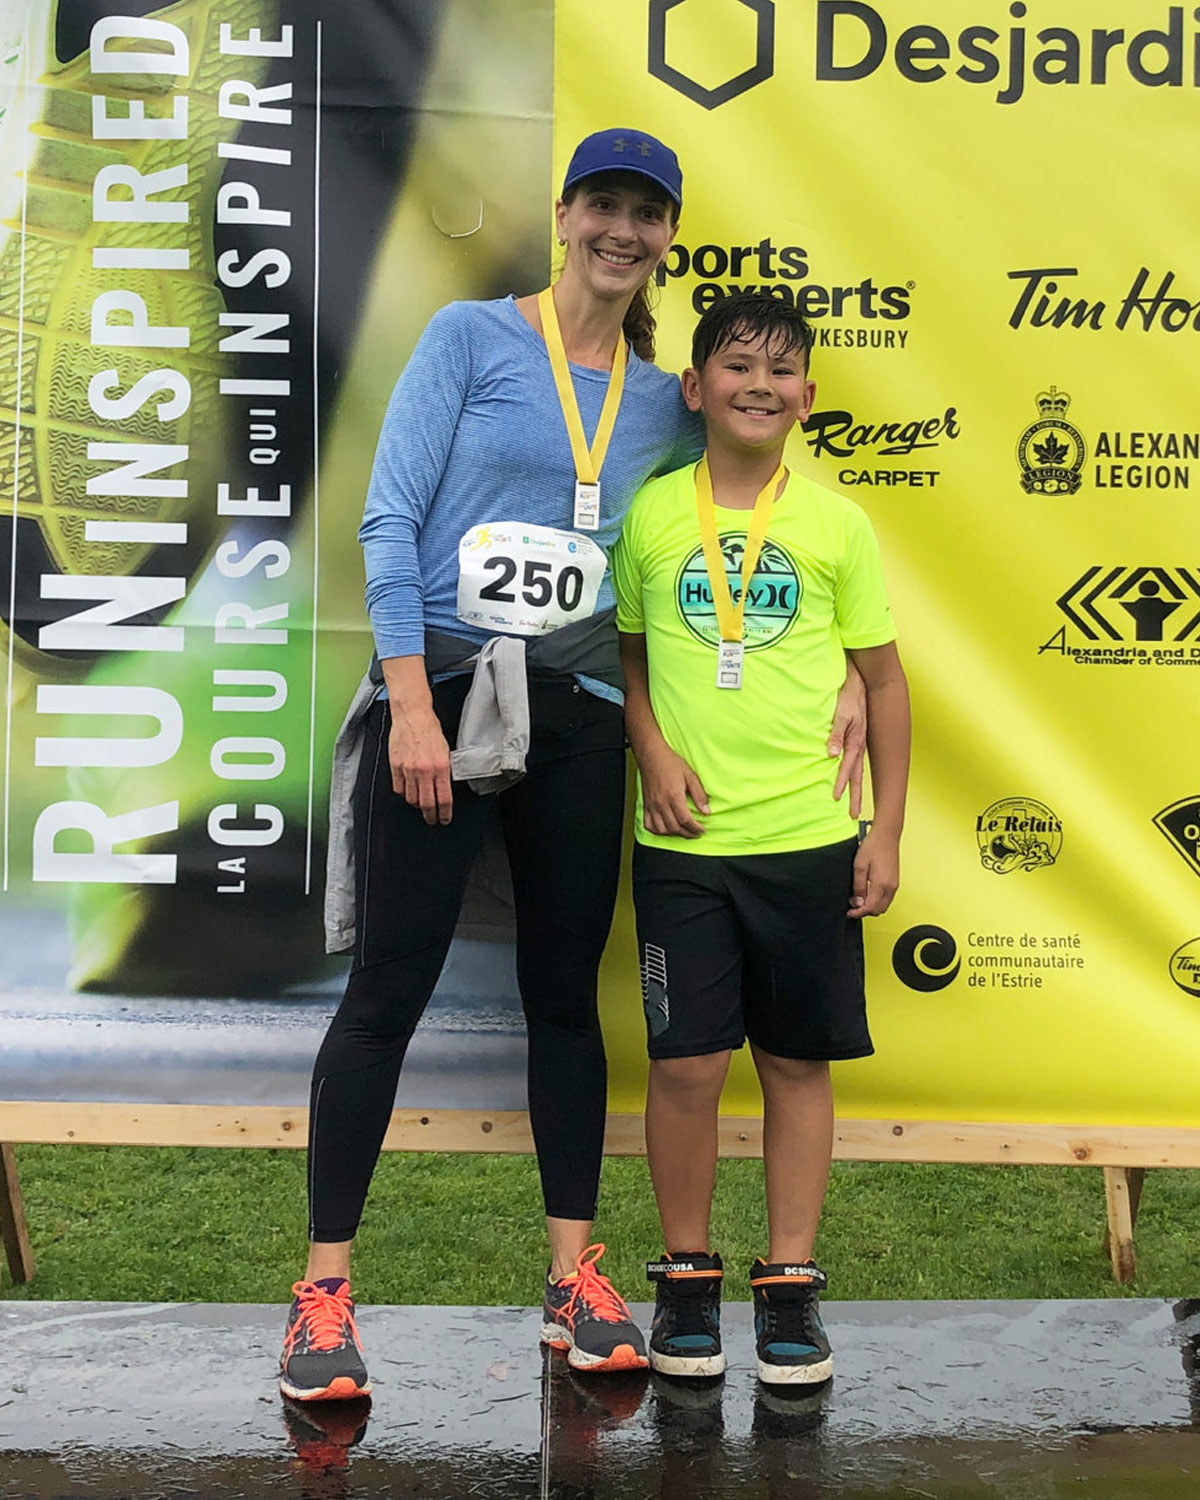 Chantal Secours from Fresh is Real and son Pierce Liu after running a 5K in Alexandria, ON. September 2019.